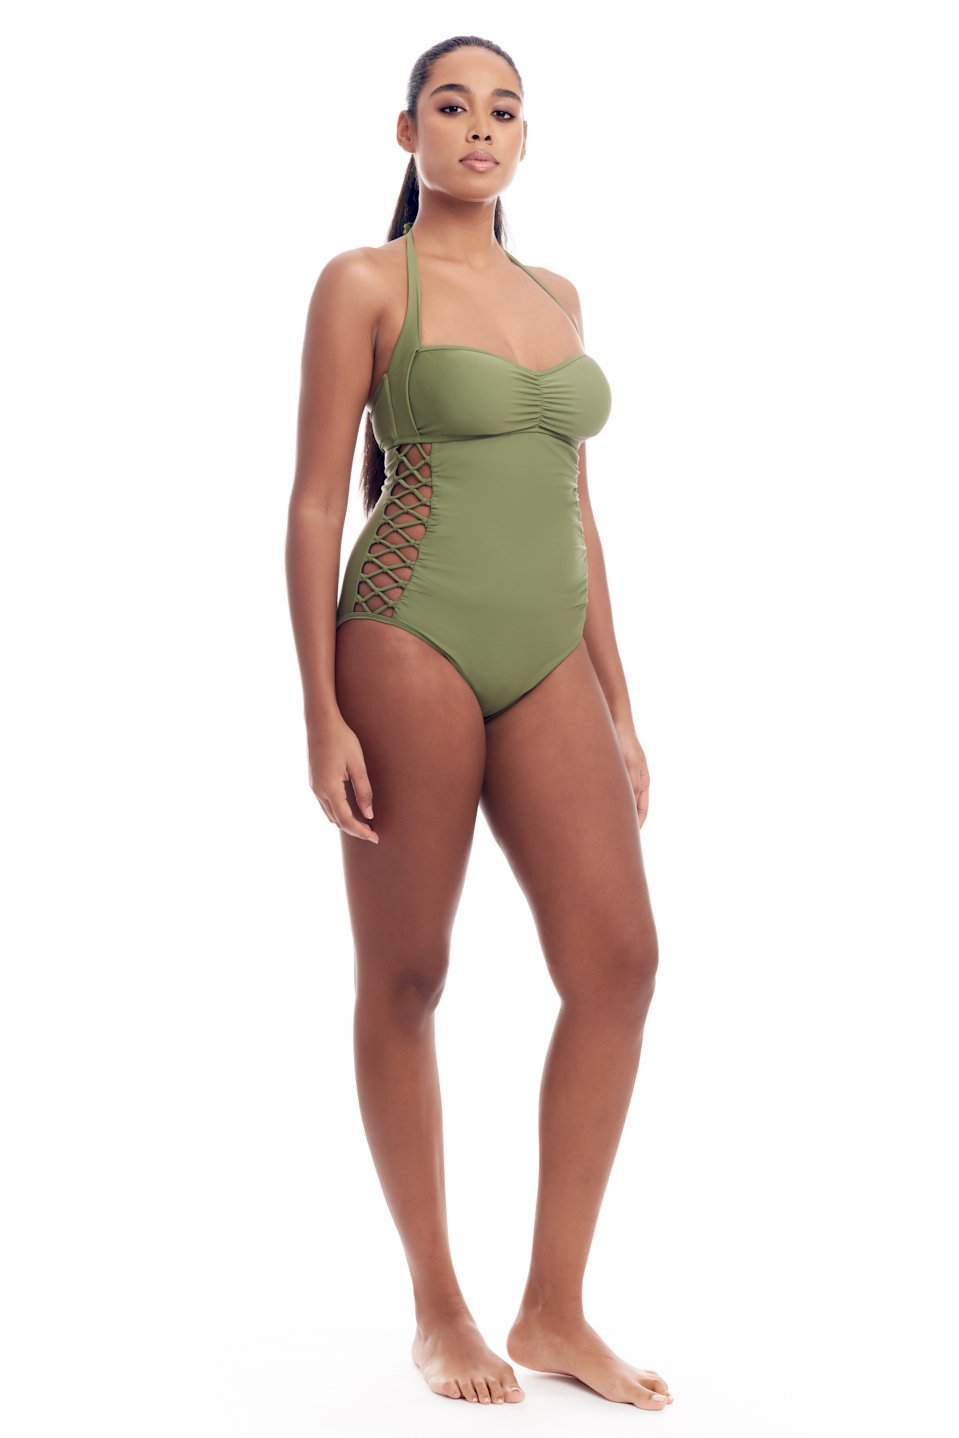 Side lace-up, adjustable halter strap one-piece swimsuit for women in regular and plus sizes body shaping swimwear with tummy control bathing suits in 4 colors by Cover Girl Shop